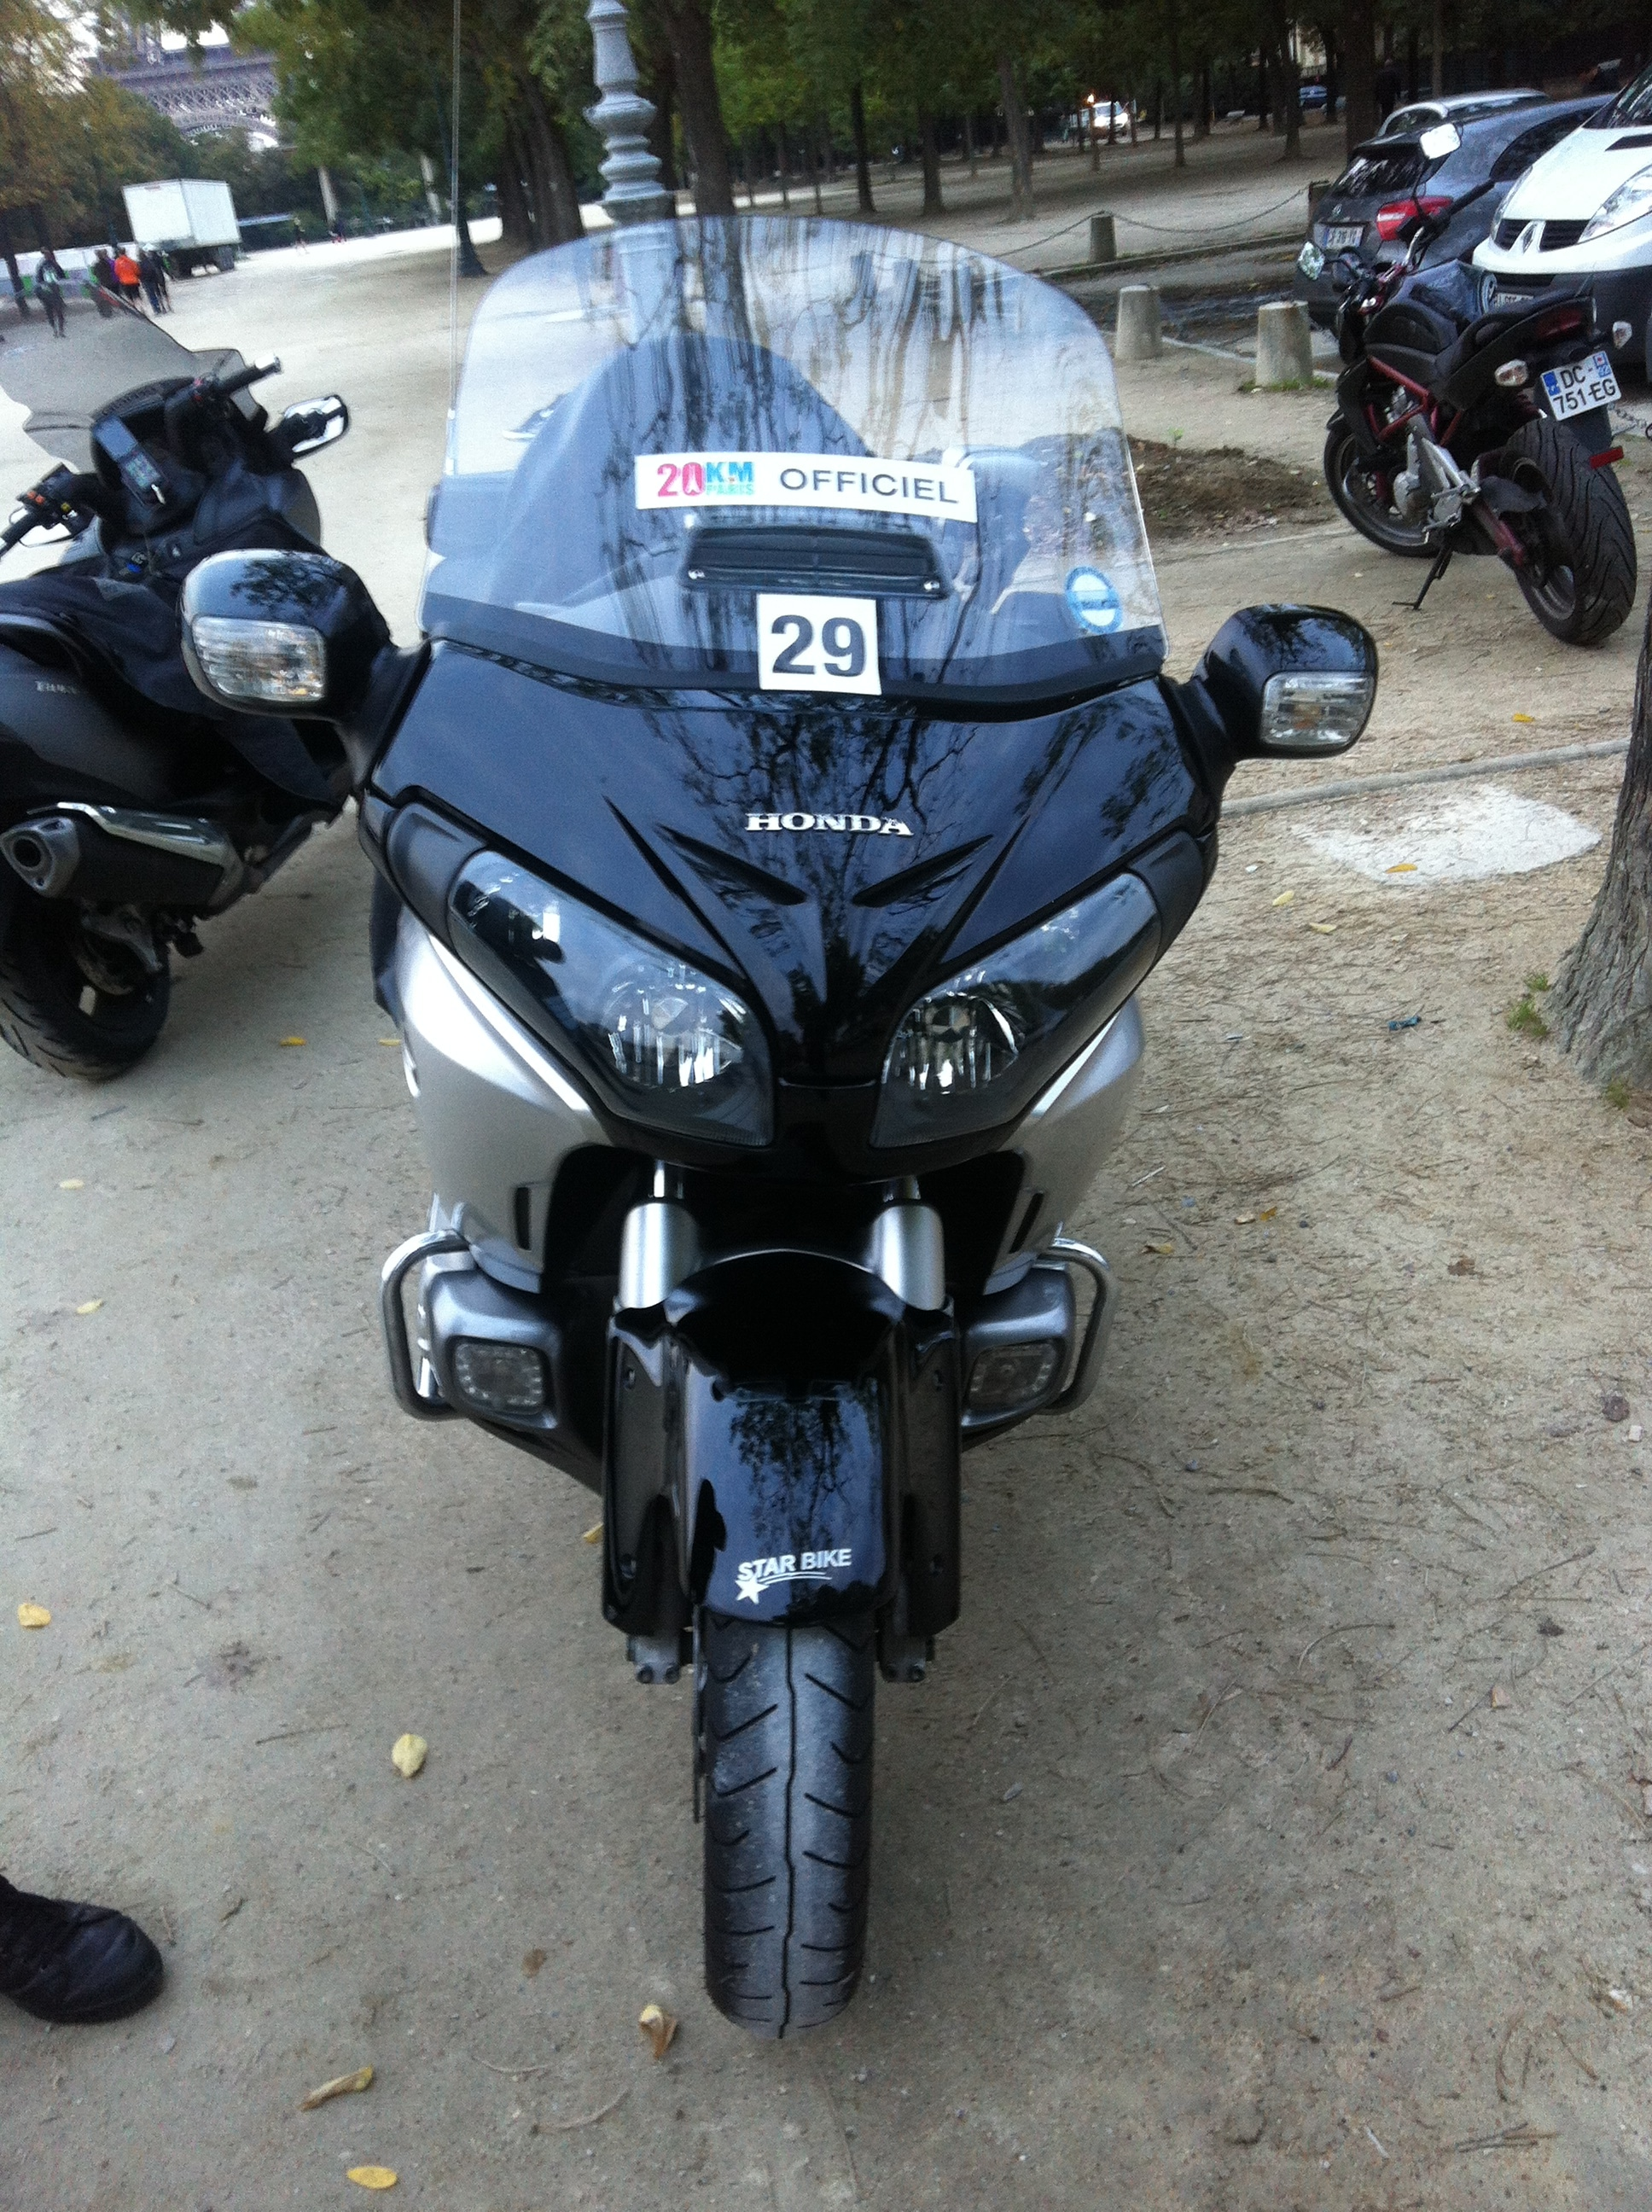 Goldwing Liberty 20 km Paris